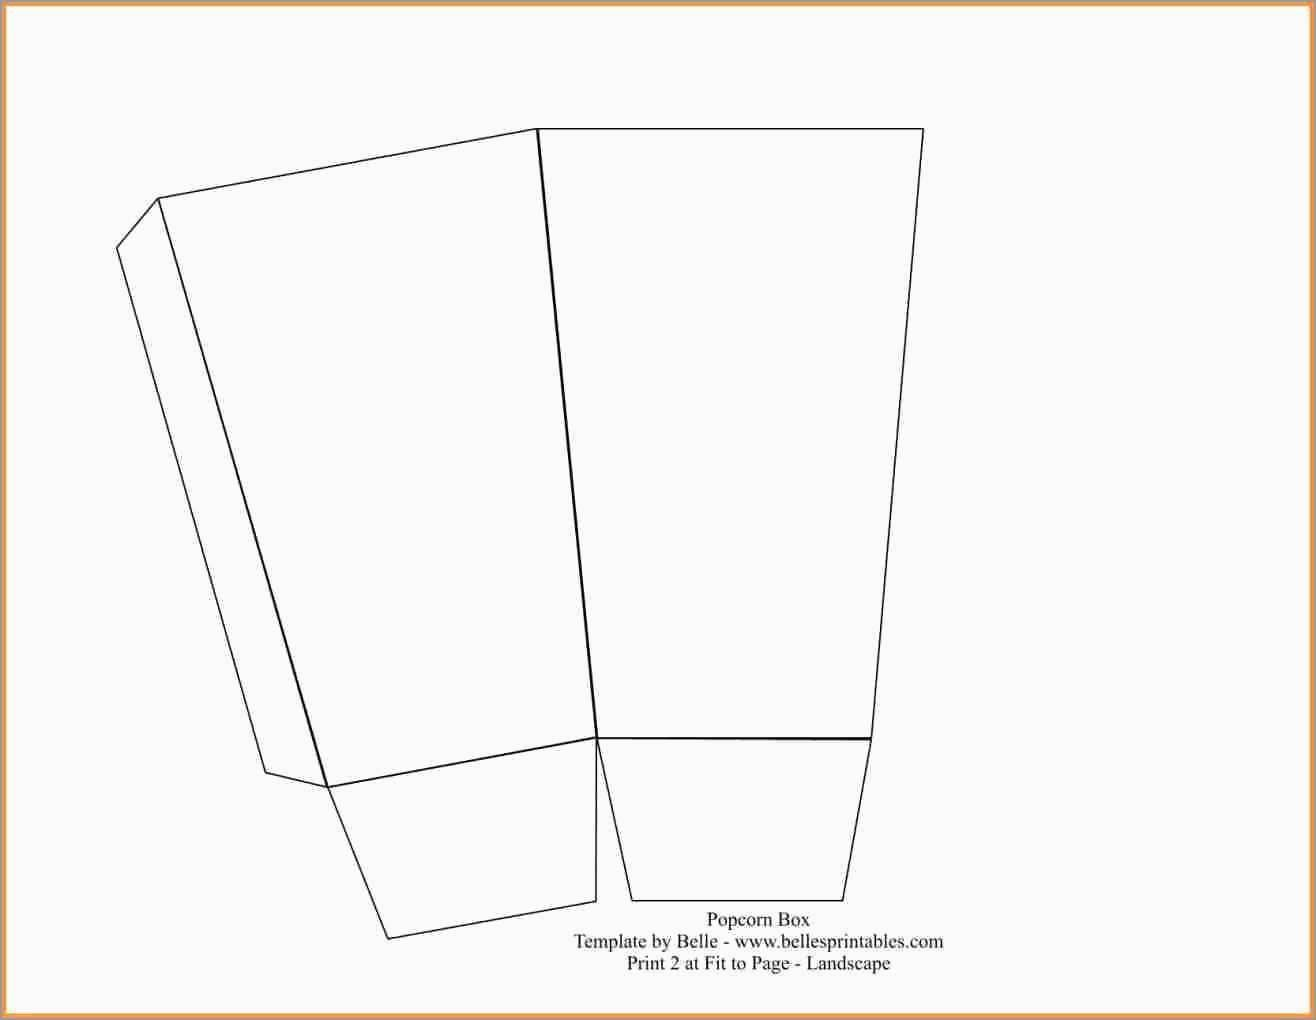 28 Avery Labels 18160 Template In 2020 Popcorn Box Template